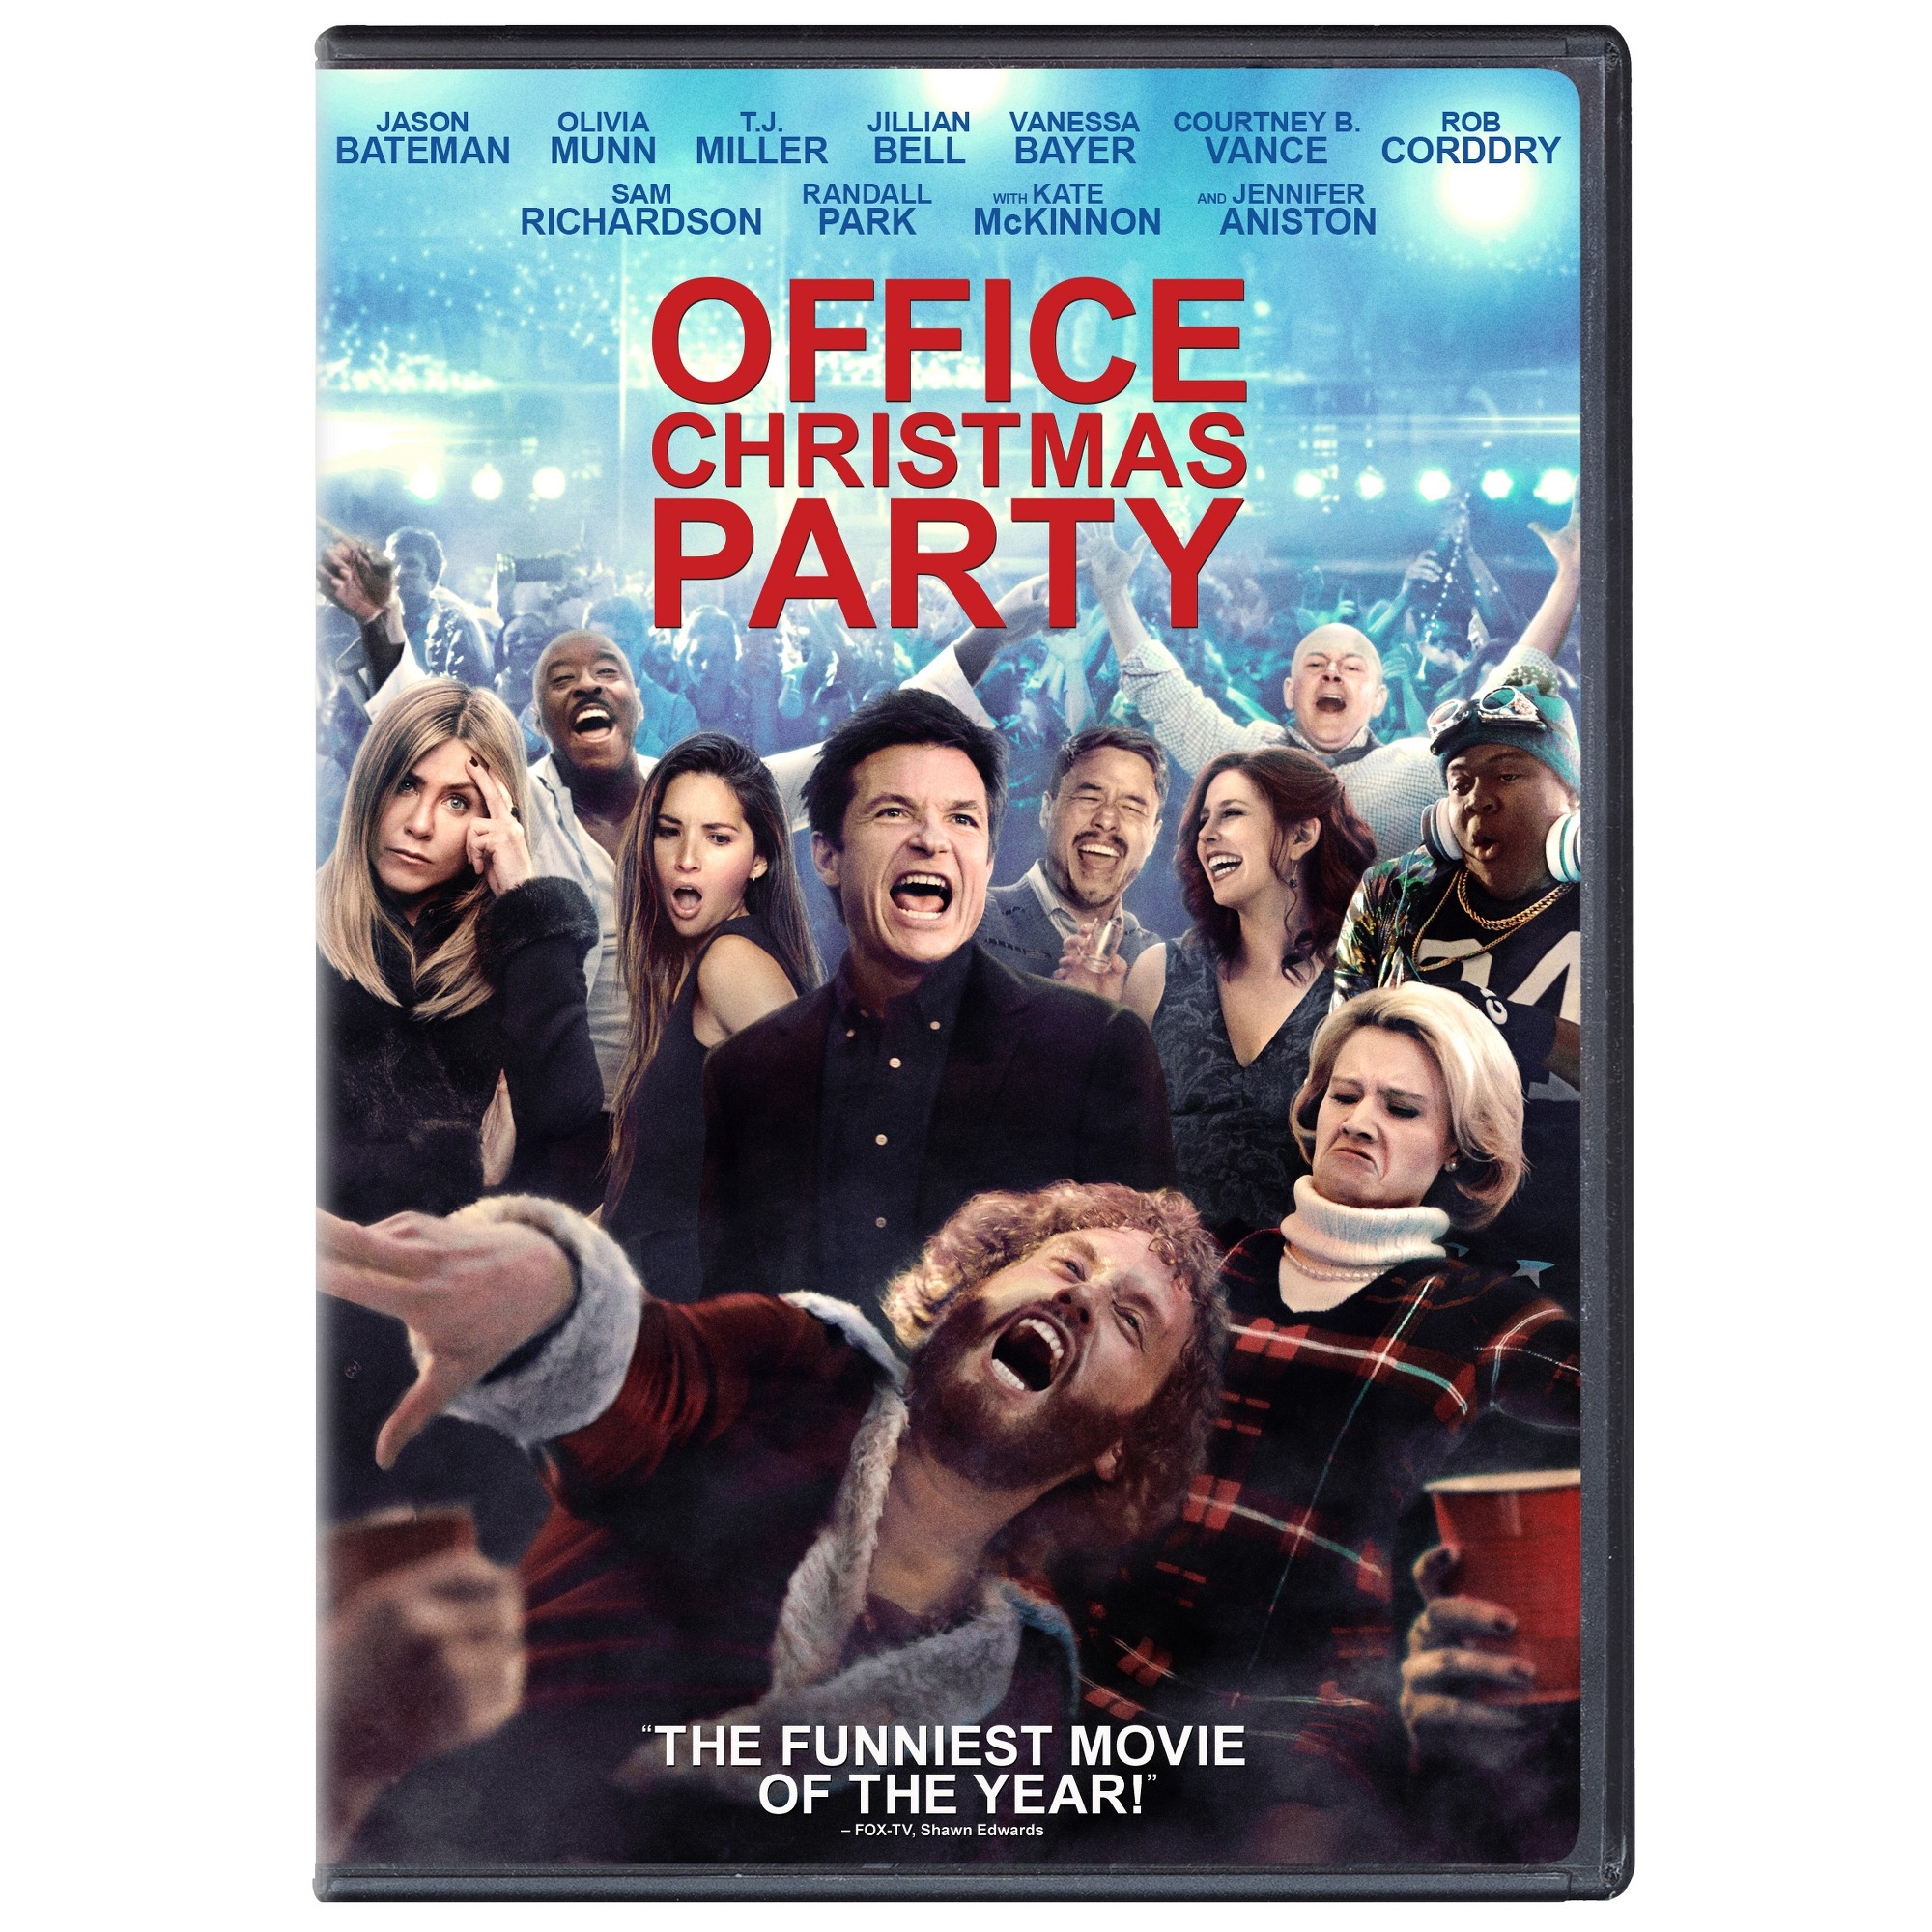 Office Christmas Party (Dvd) | Products | Pinterest | Office ...